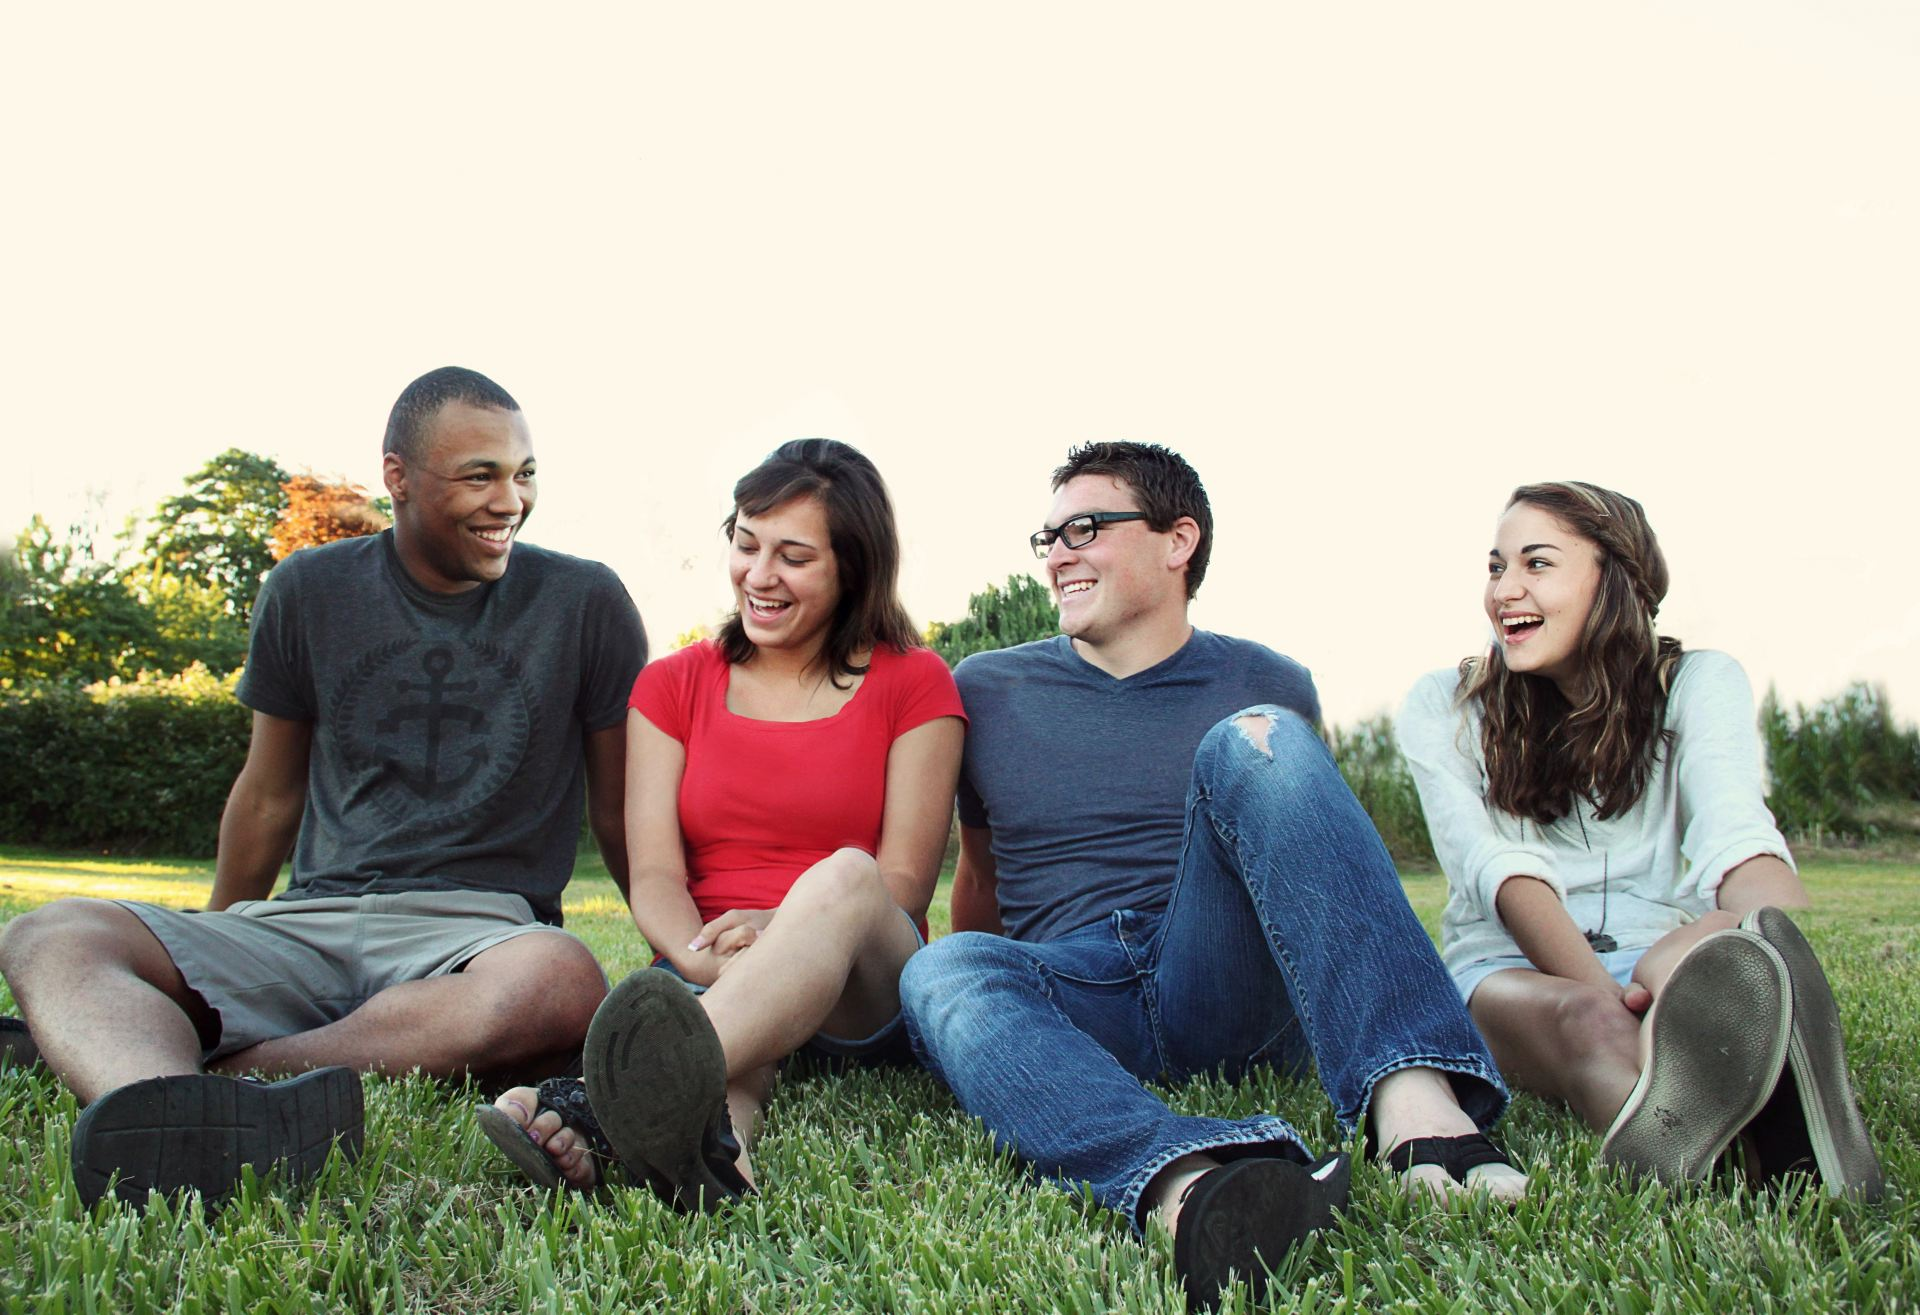 Four people sat together outside smiling